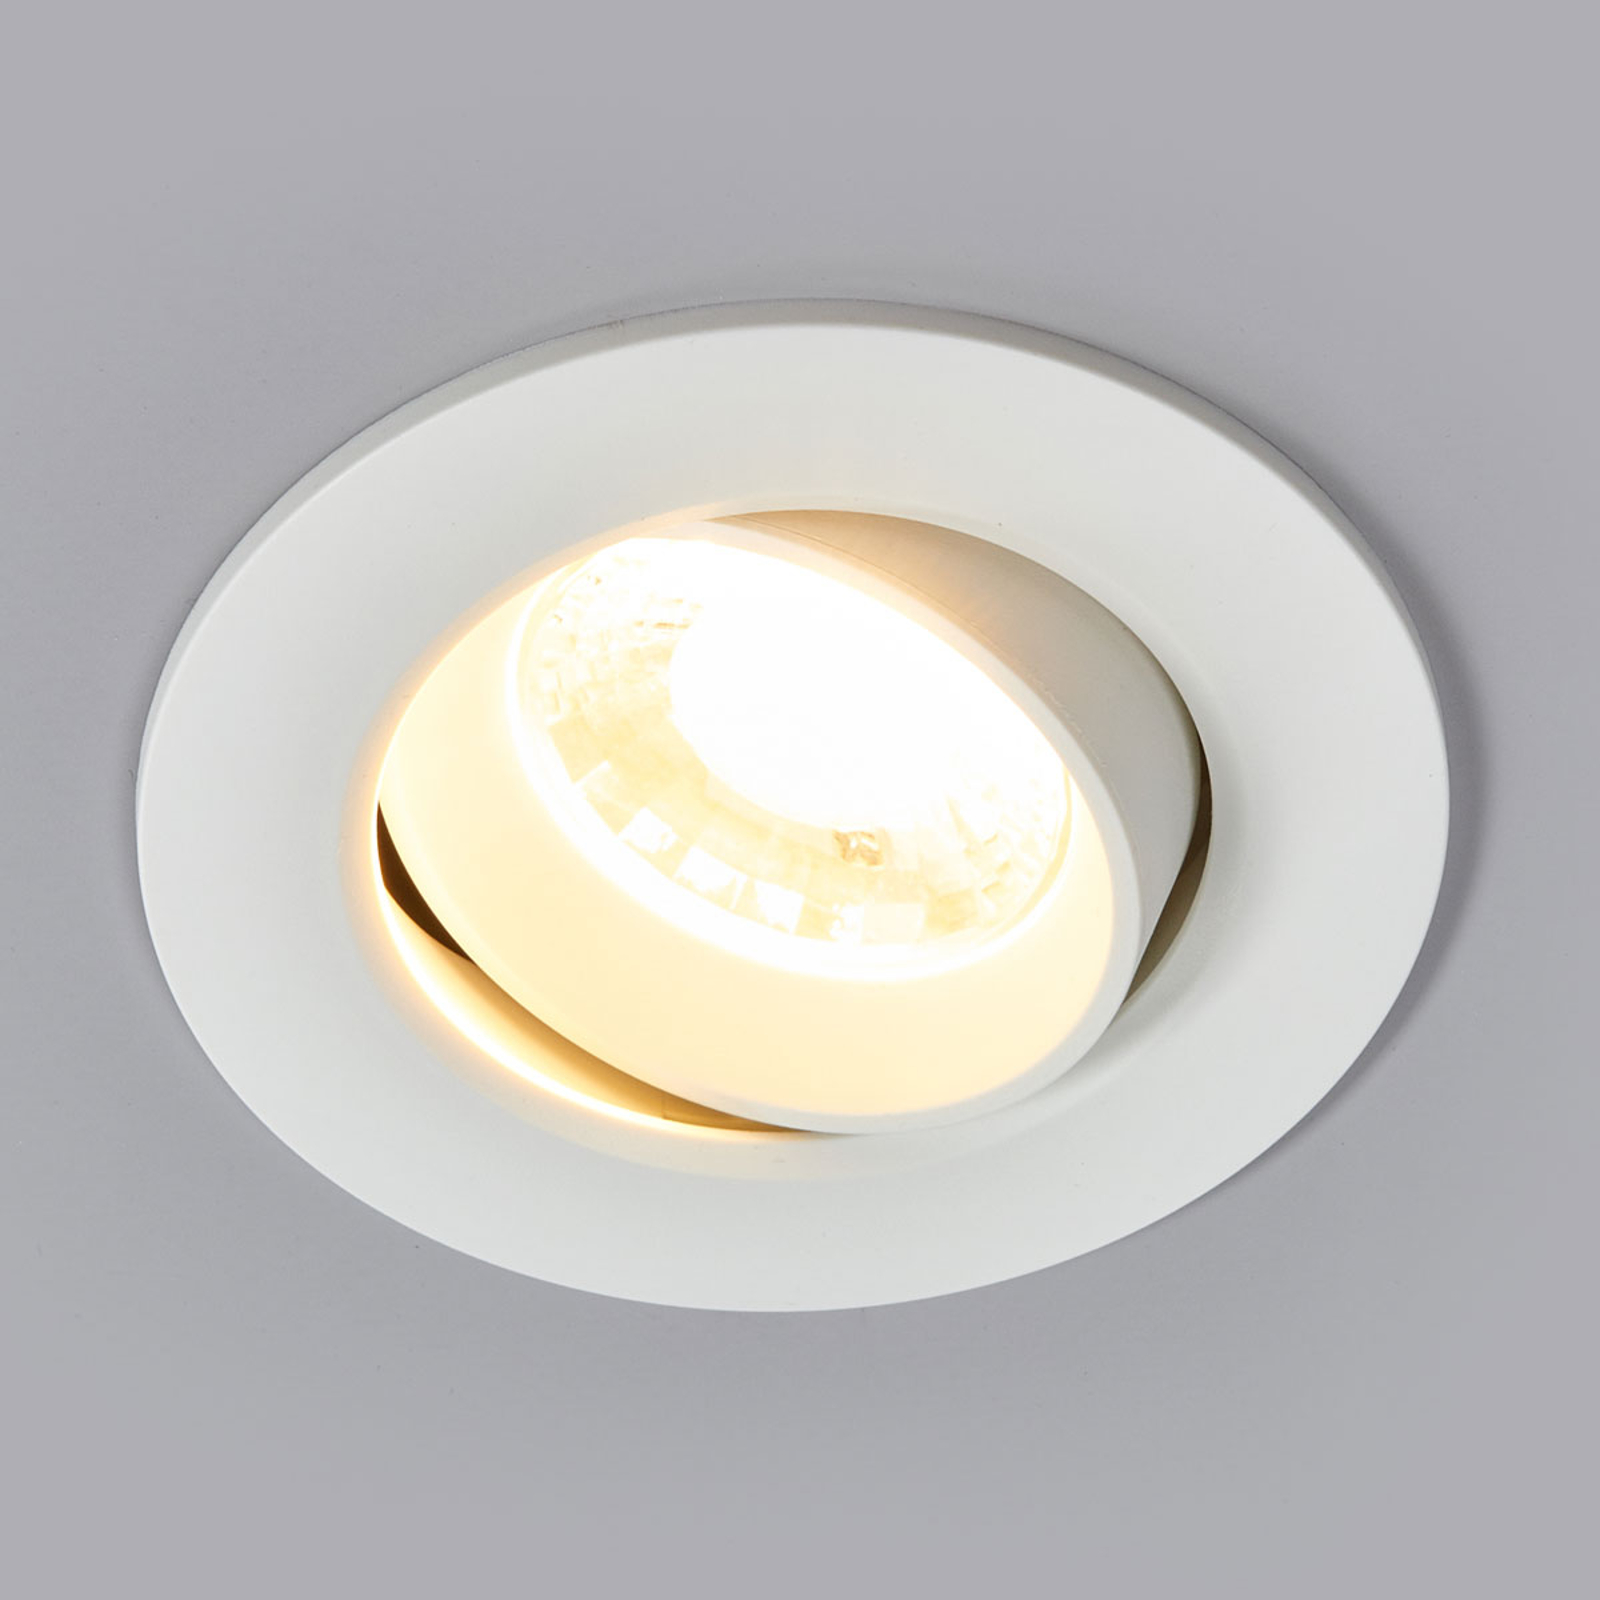 Spot LED bianco Quentin